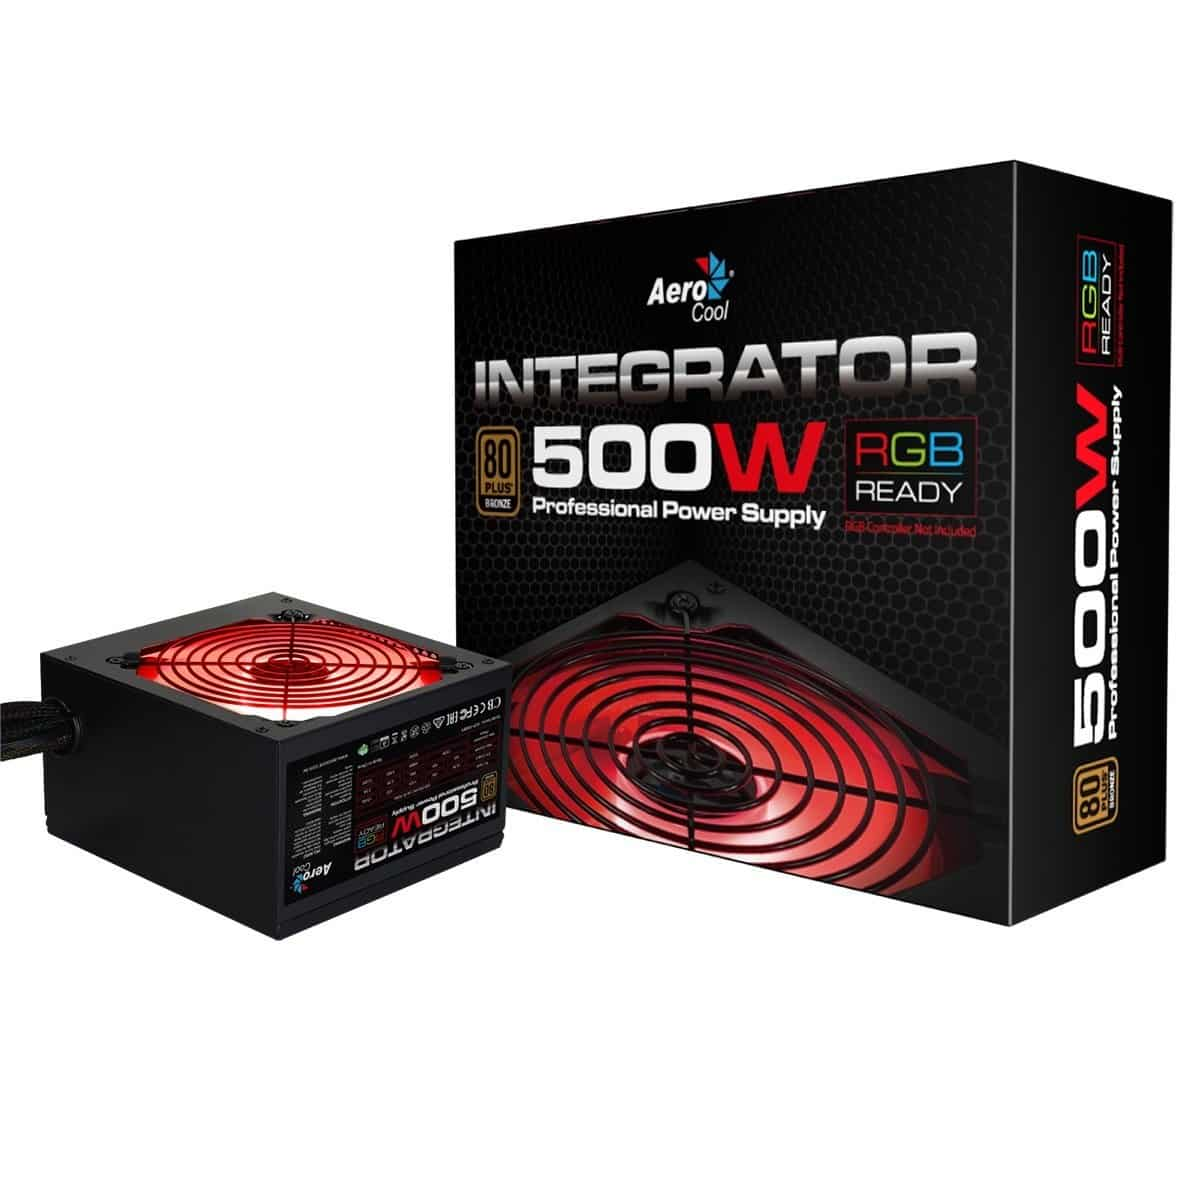 Aerocool Integrator 500W RGB PSU 12cm Black Fan